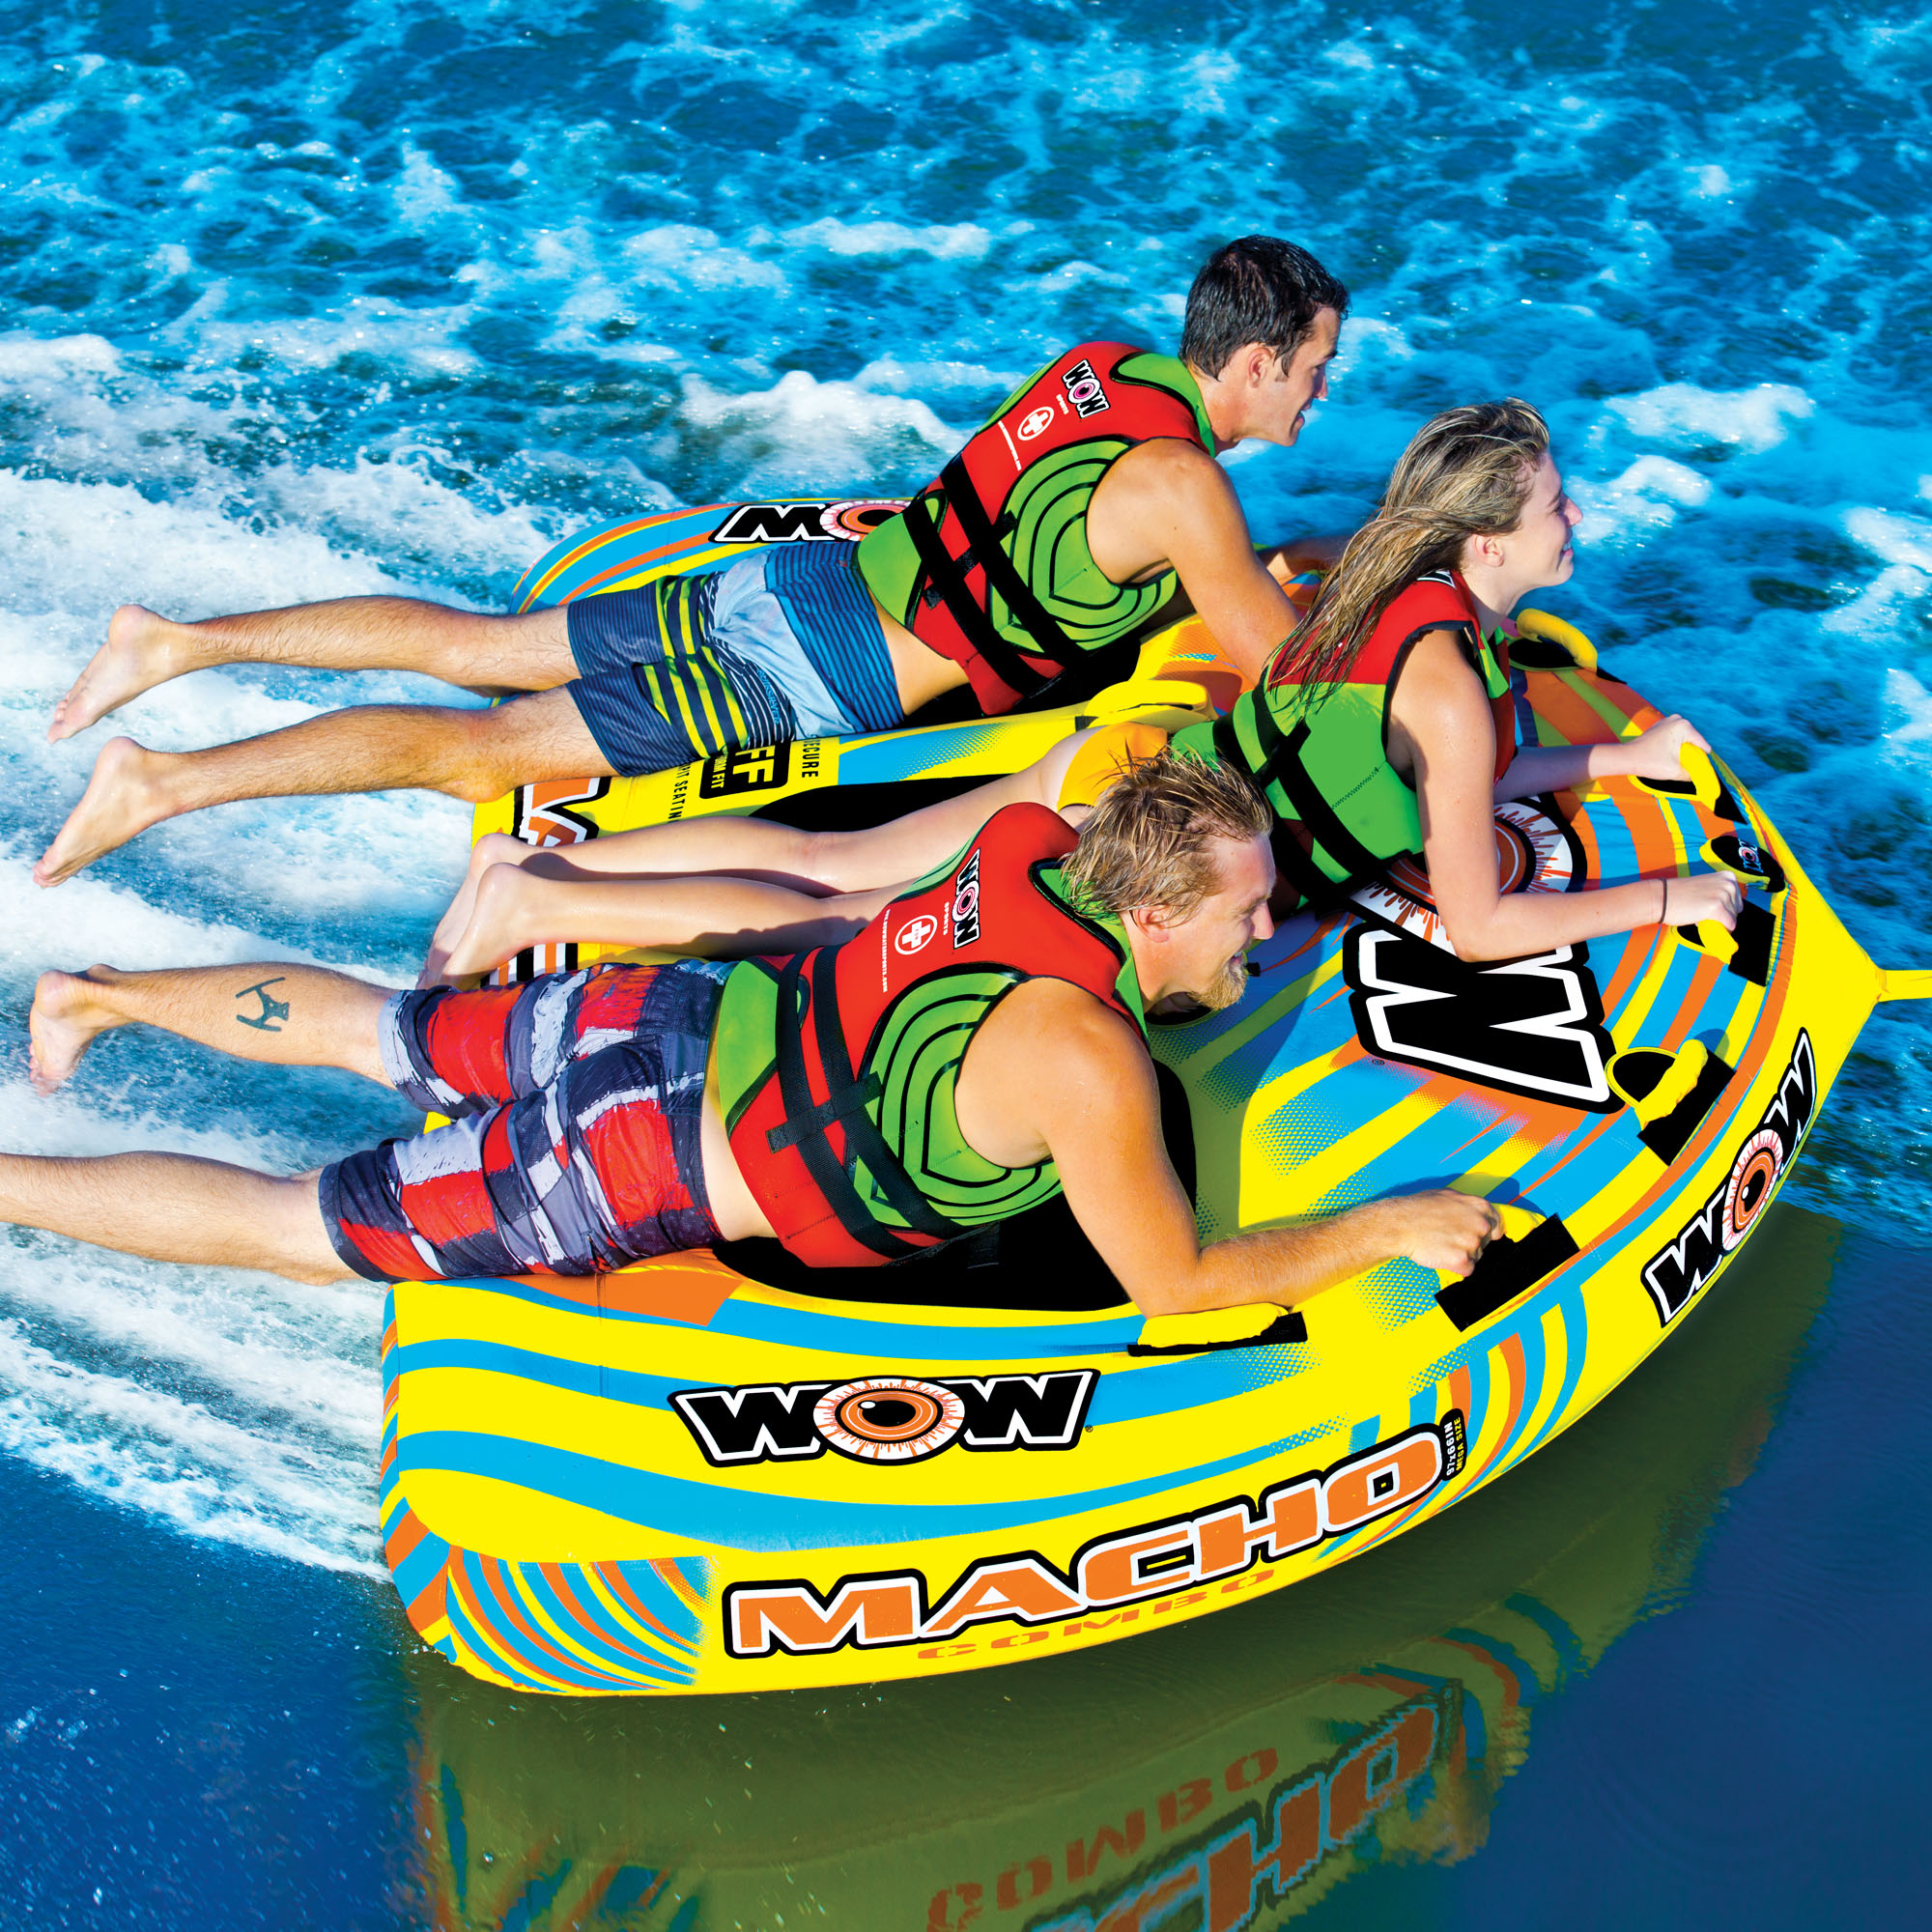 Macho Combo 3 Wow World Of Watersports Tow Harness For Towables Persons